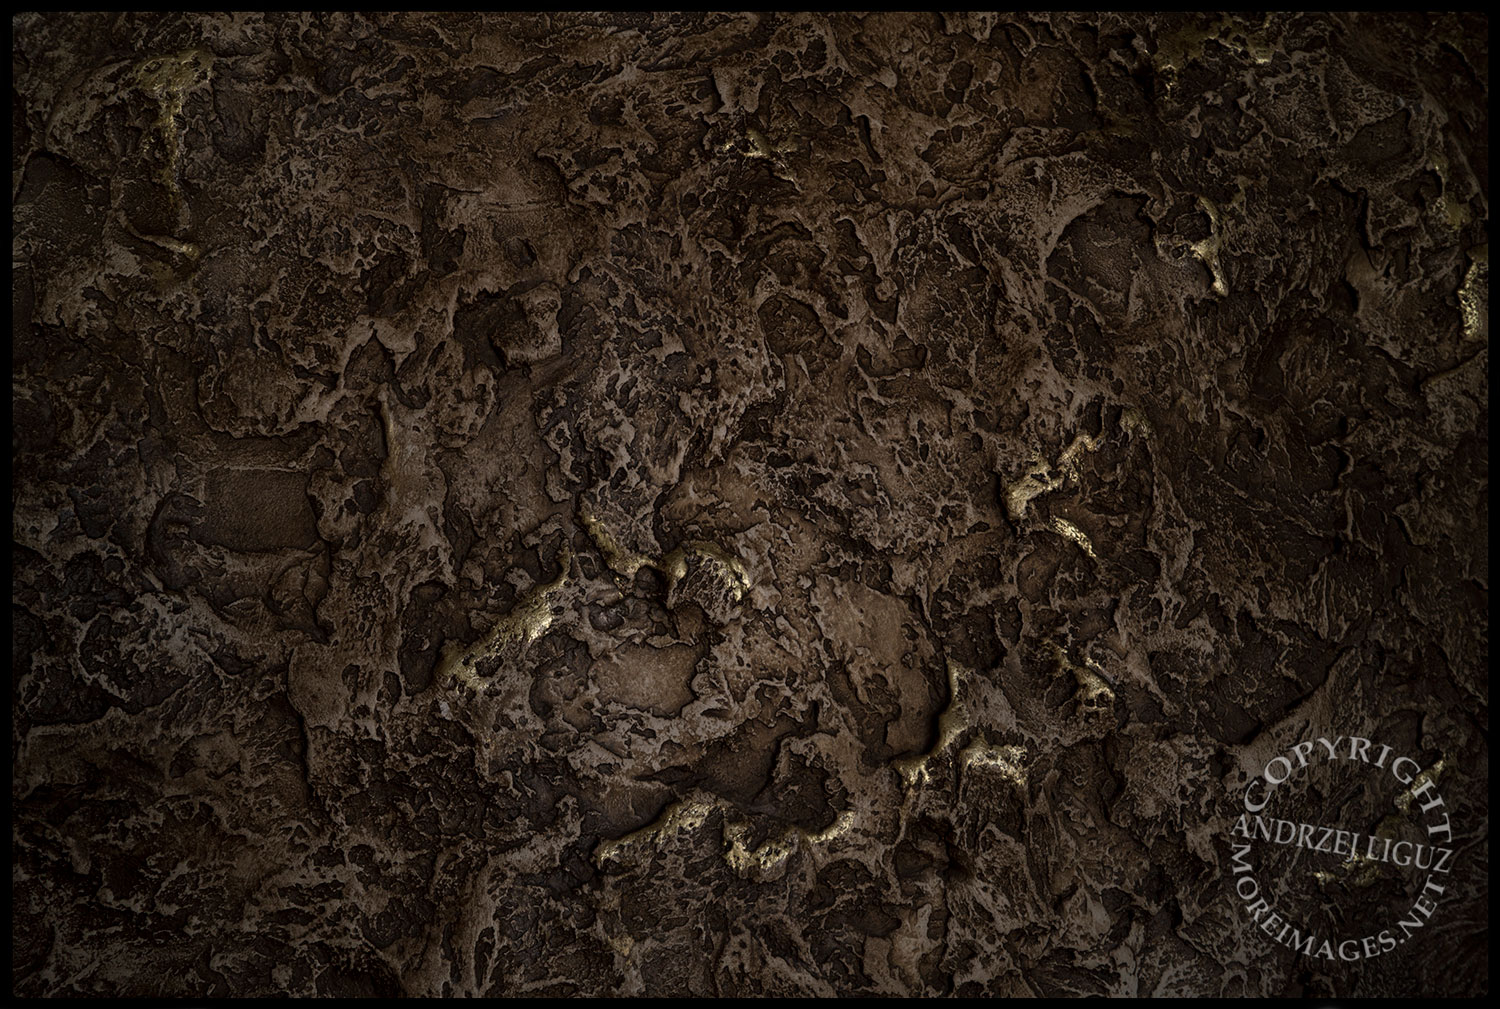 Wall detail (with gold leaf) of the plaster invented by Dickie, The House on the Hill, CA 2015-03-15